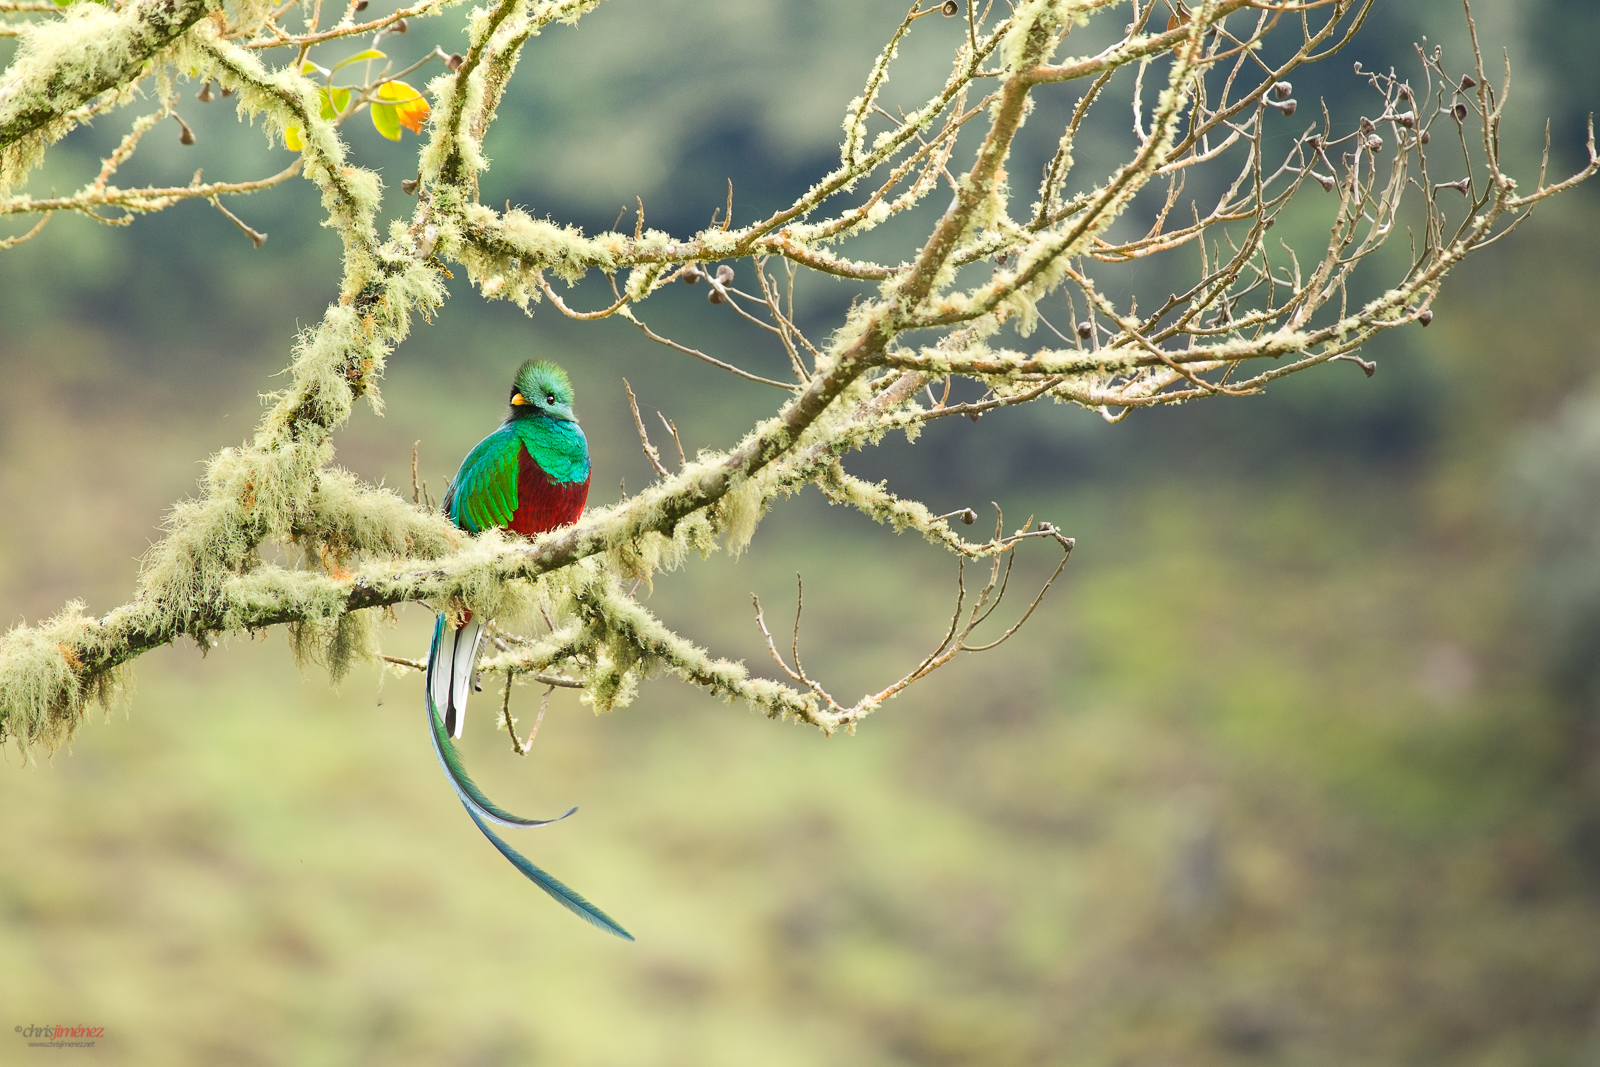 Resplendent Quetzal (Pharomachrus mocinno) perched in a mossy branch